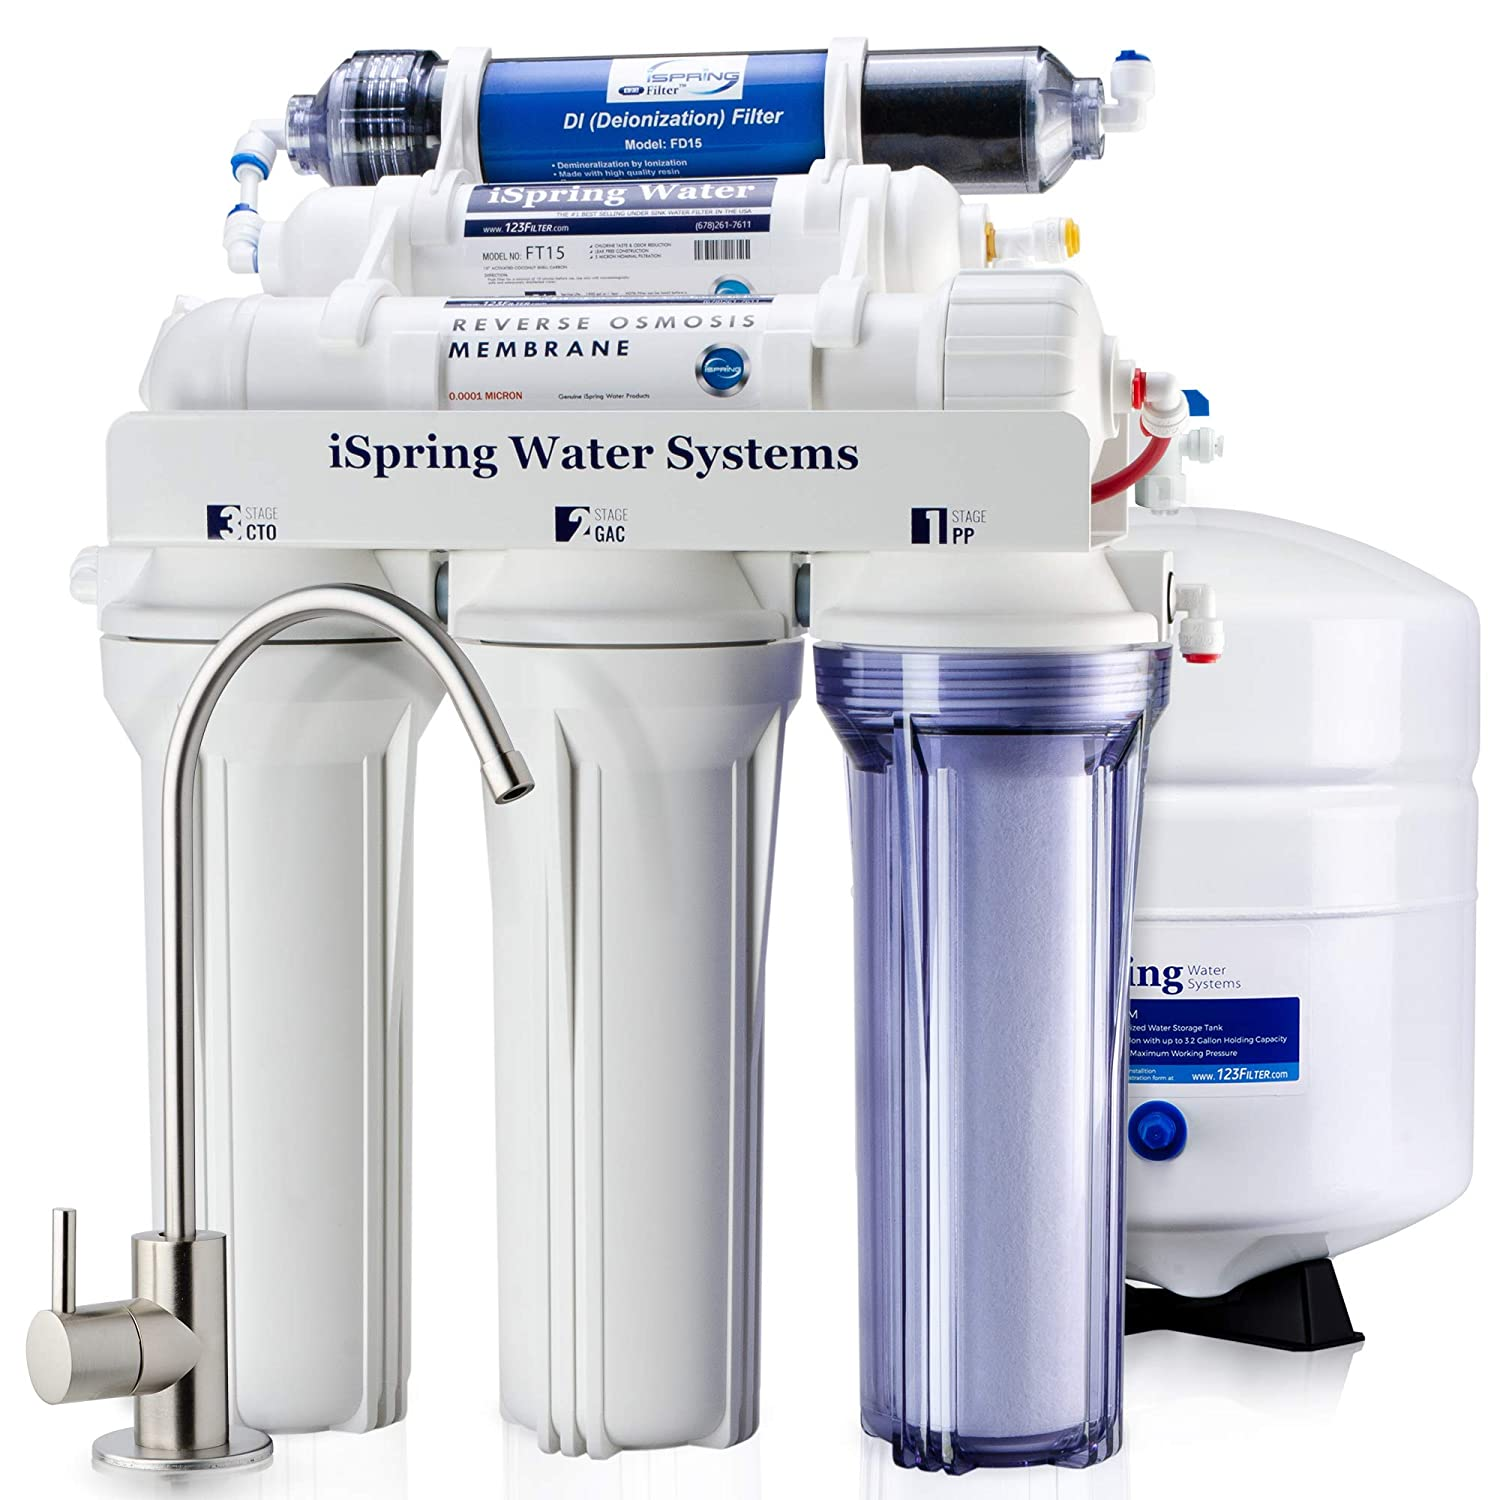 iSpring RCC7D 75GPD Under Sink 6-Stage Reverse Osmosis Drinking Water Filtration System and Ultimate Water Softener with DI (De-ionization) Water Filter